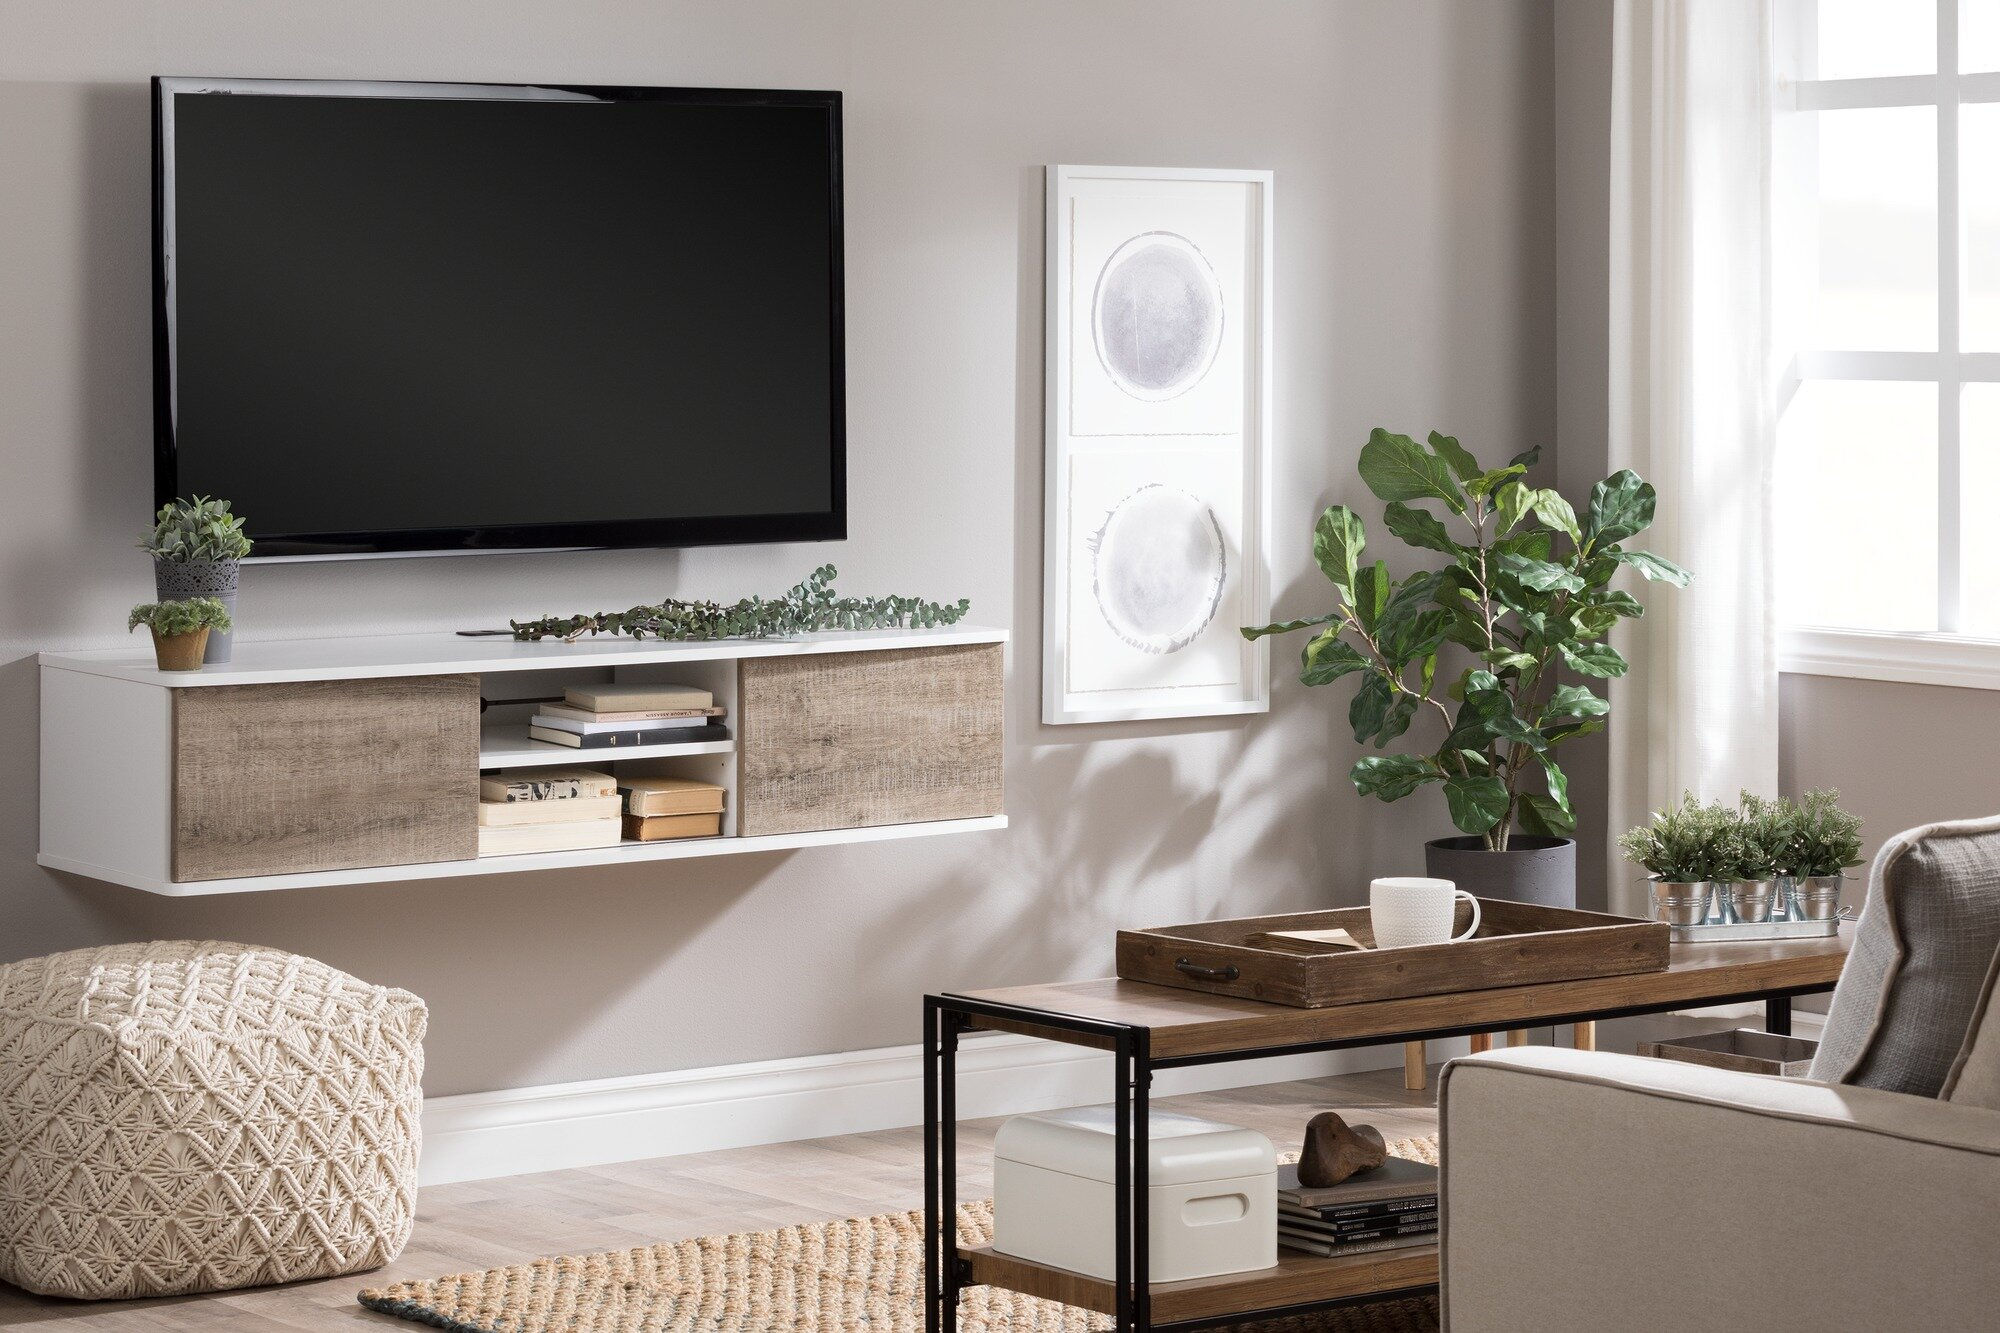 How To Mount A Tv Wayfair